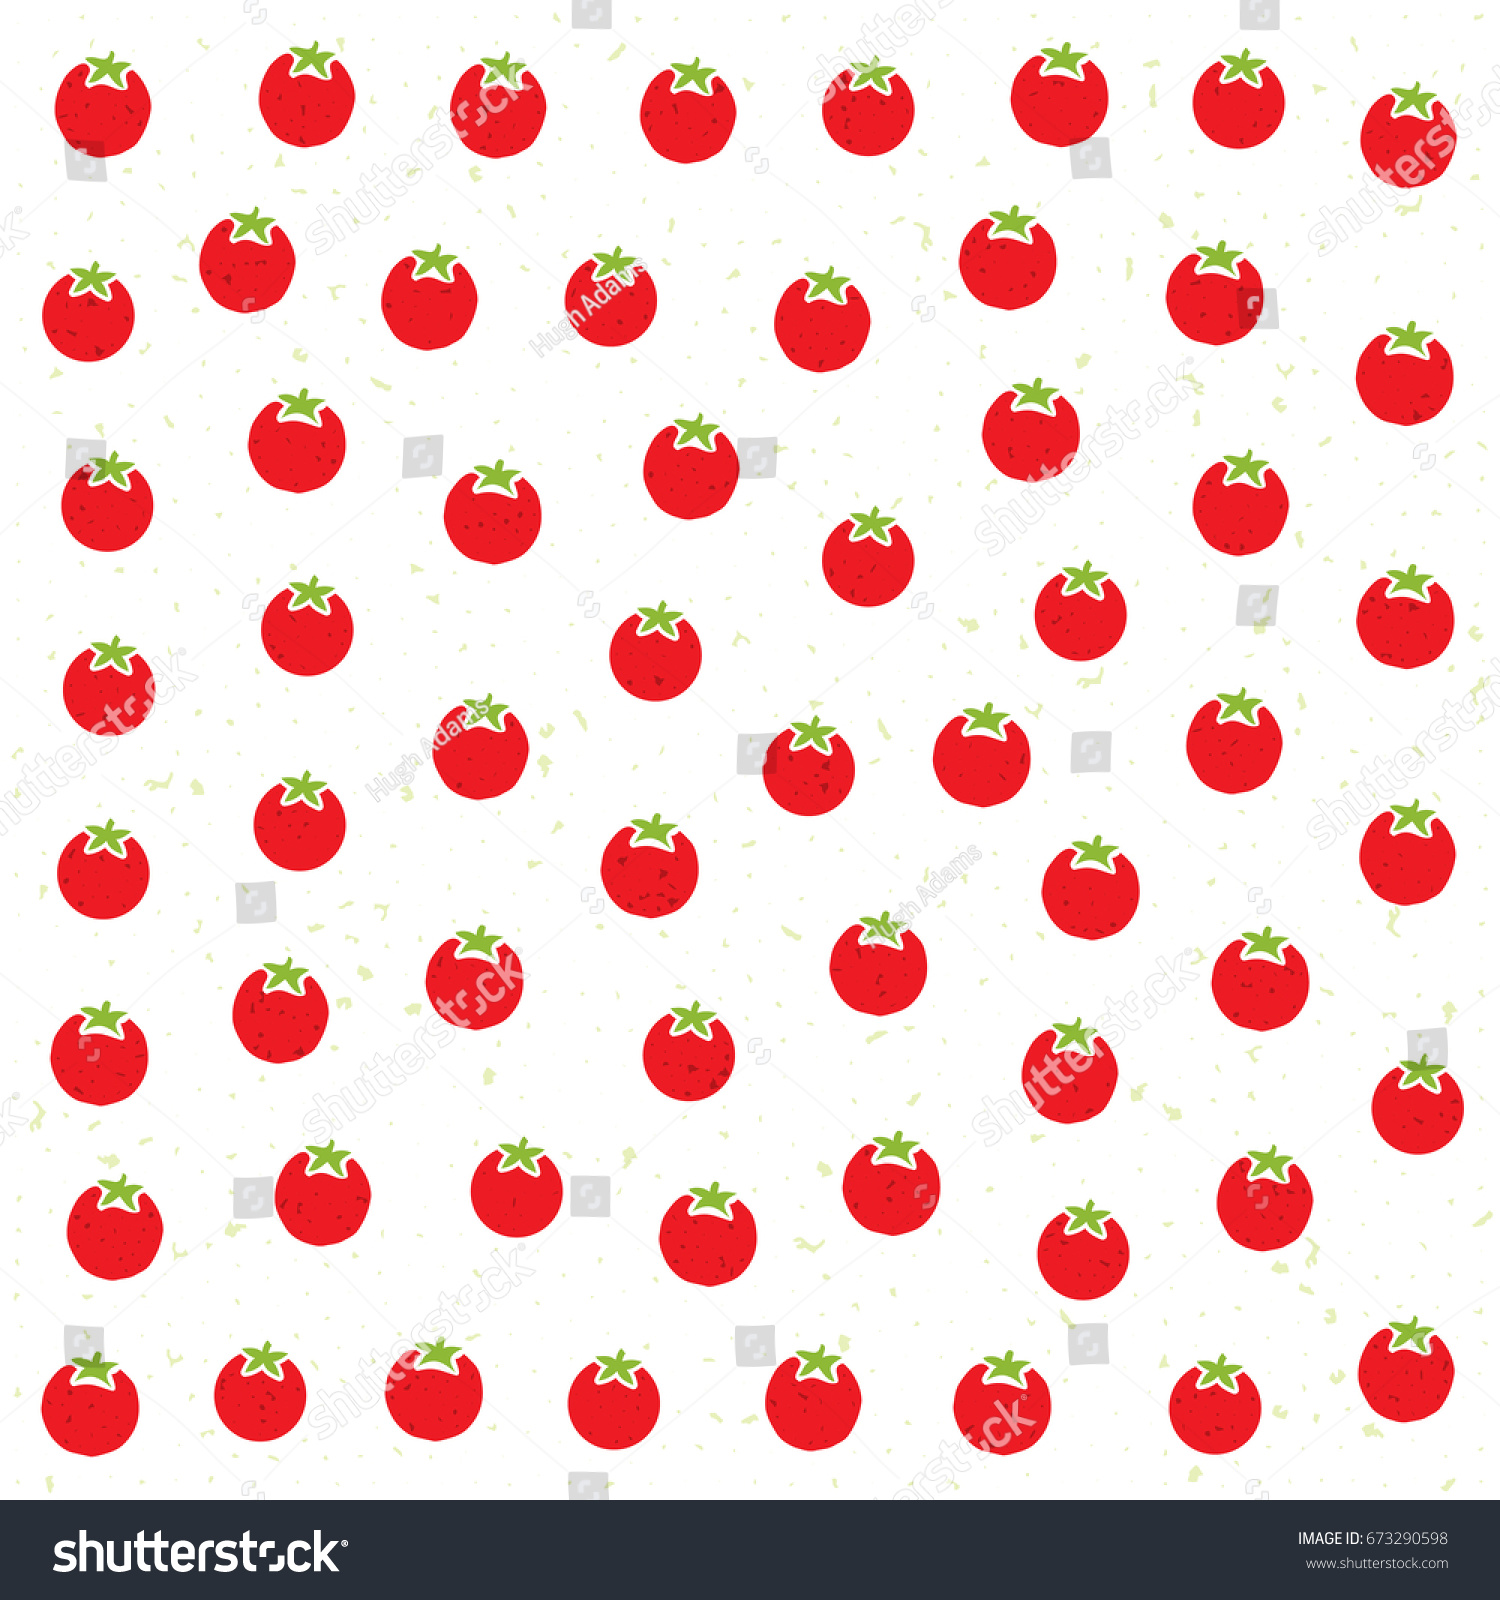 Wallpapers pattern fills web page backgrounds surface textures - Vector Pattern With Tomatoes Perfect For Wallpapers Pattern Fills Web Page Backgrounds